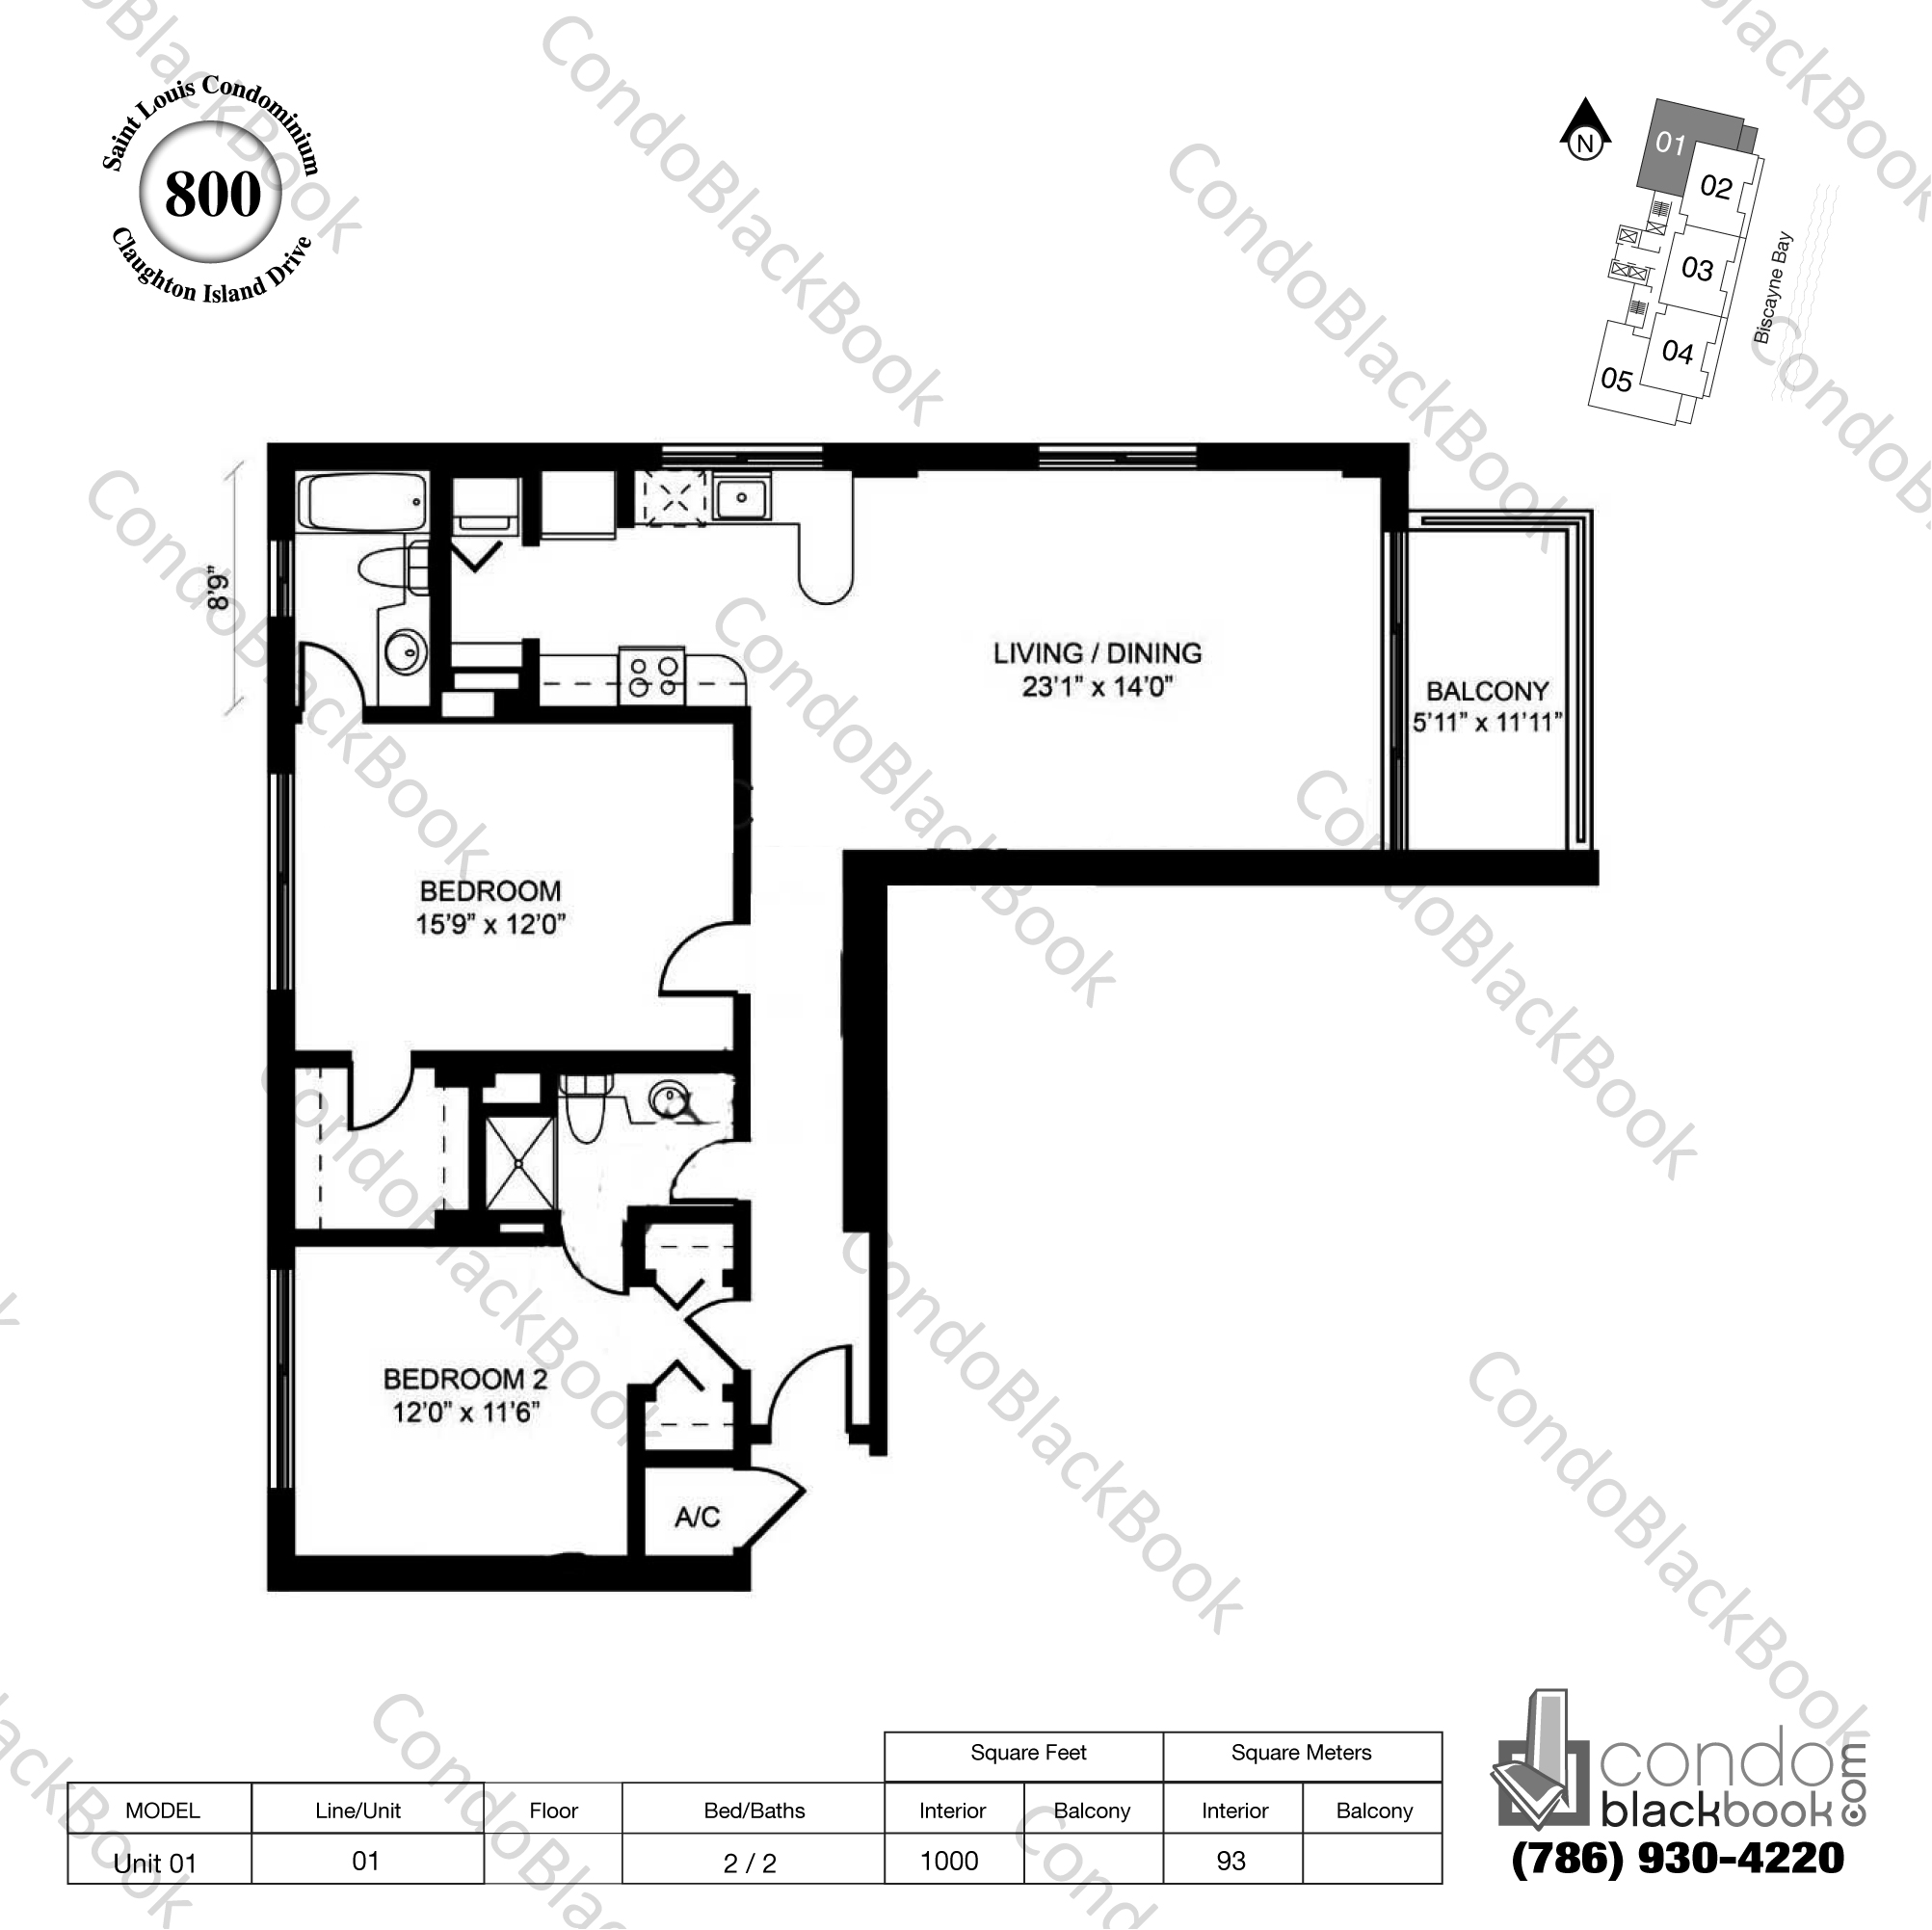 Floor plan for St Louis Condo Brickell Key Miami, model Unit 01, line 01, 2 / 2 bedrooms, 1000 sq ft